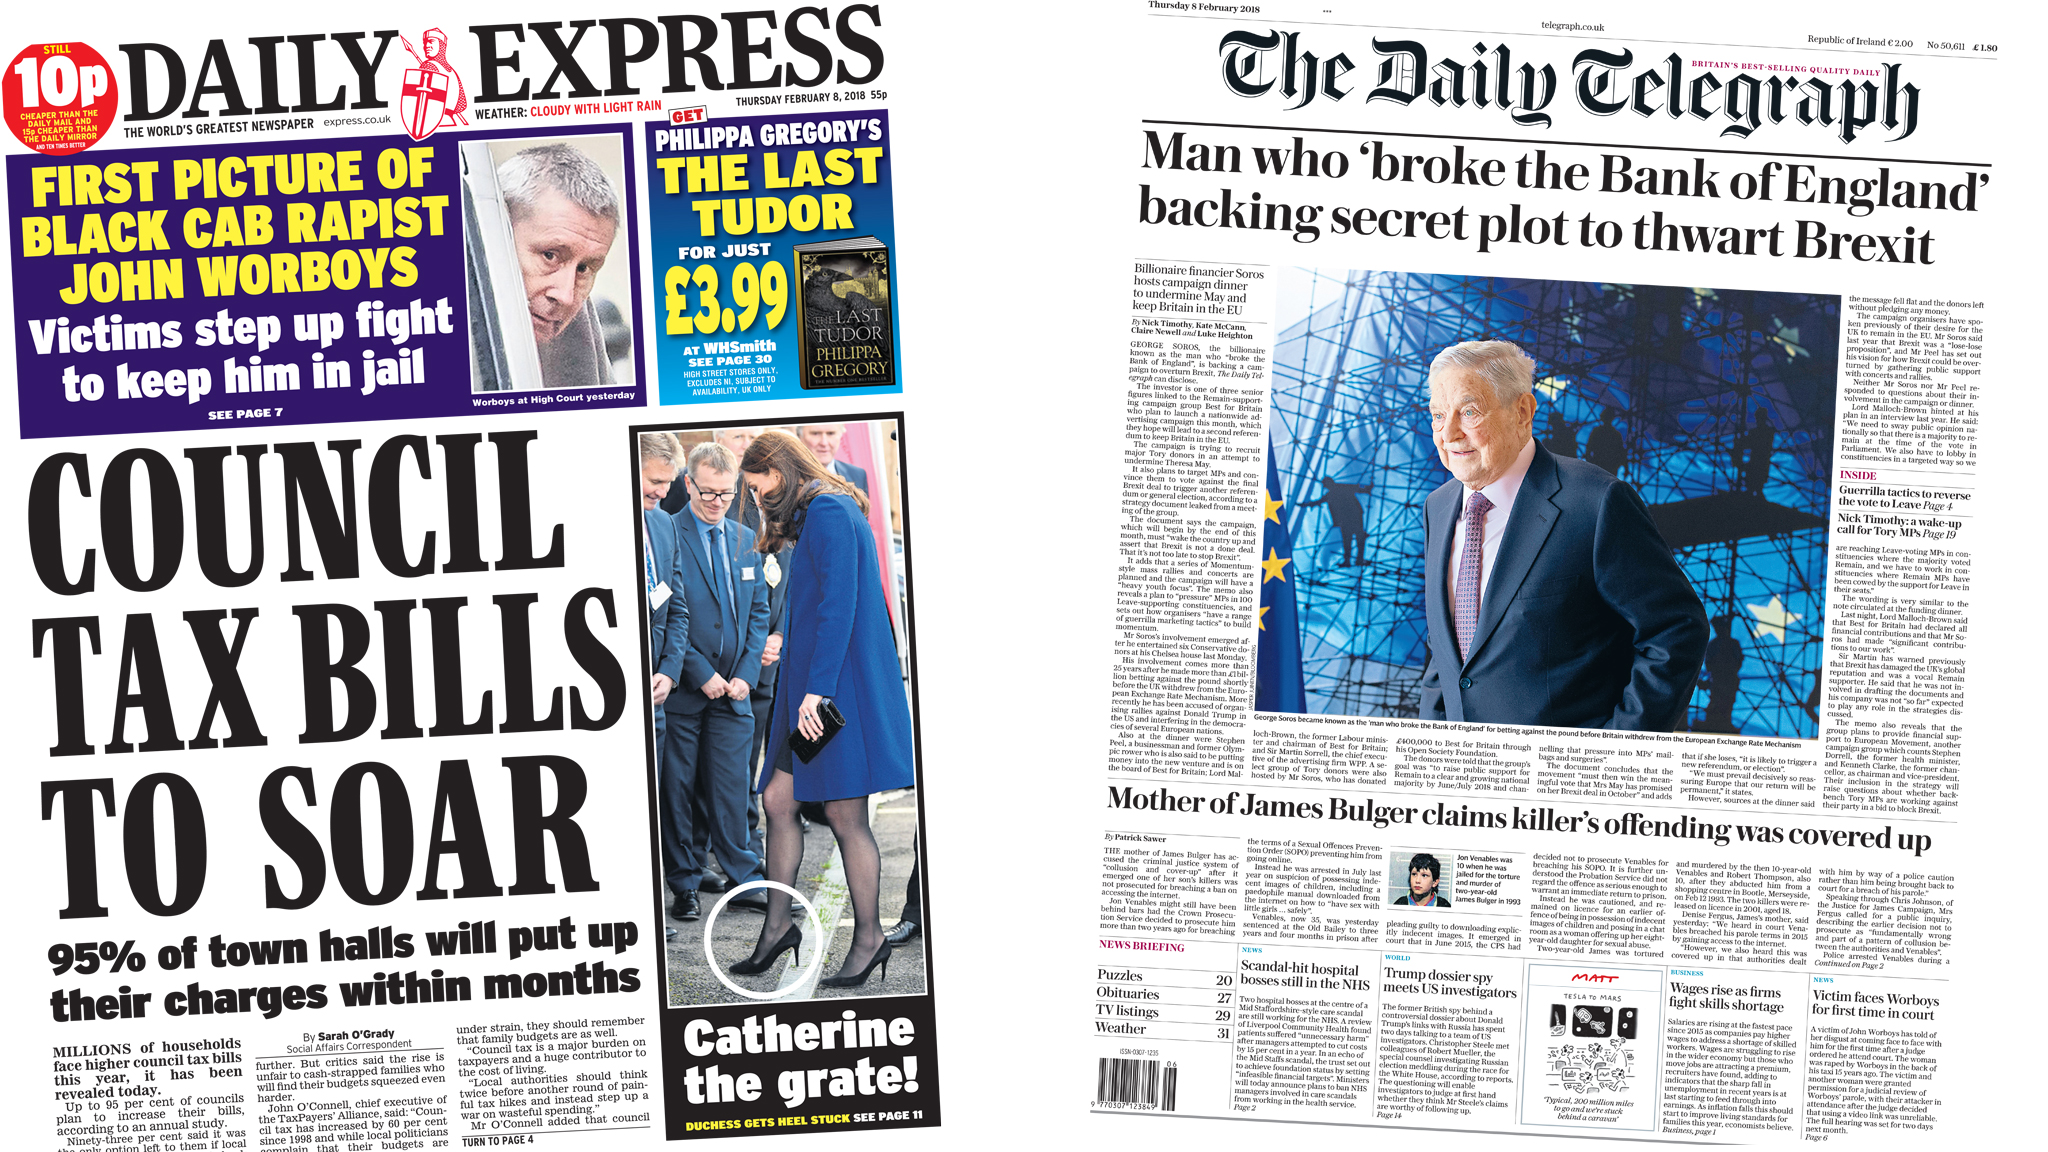 Daily Express and Daily Telegraph front pages for 08/02/18